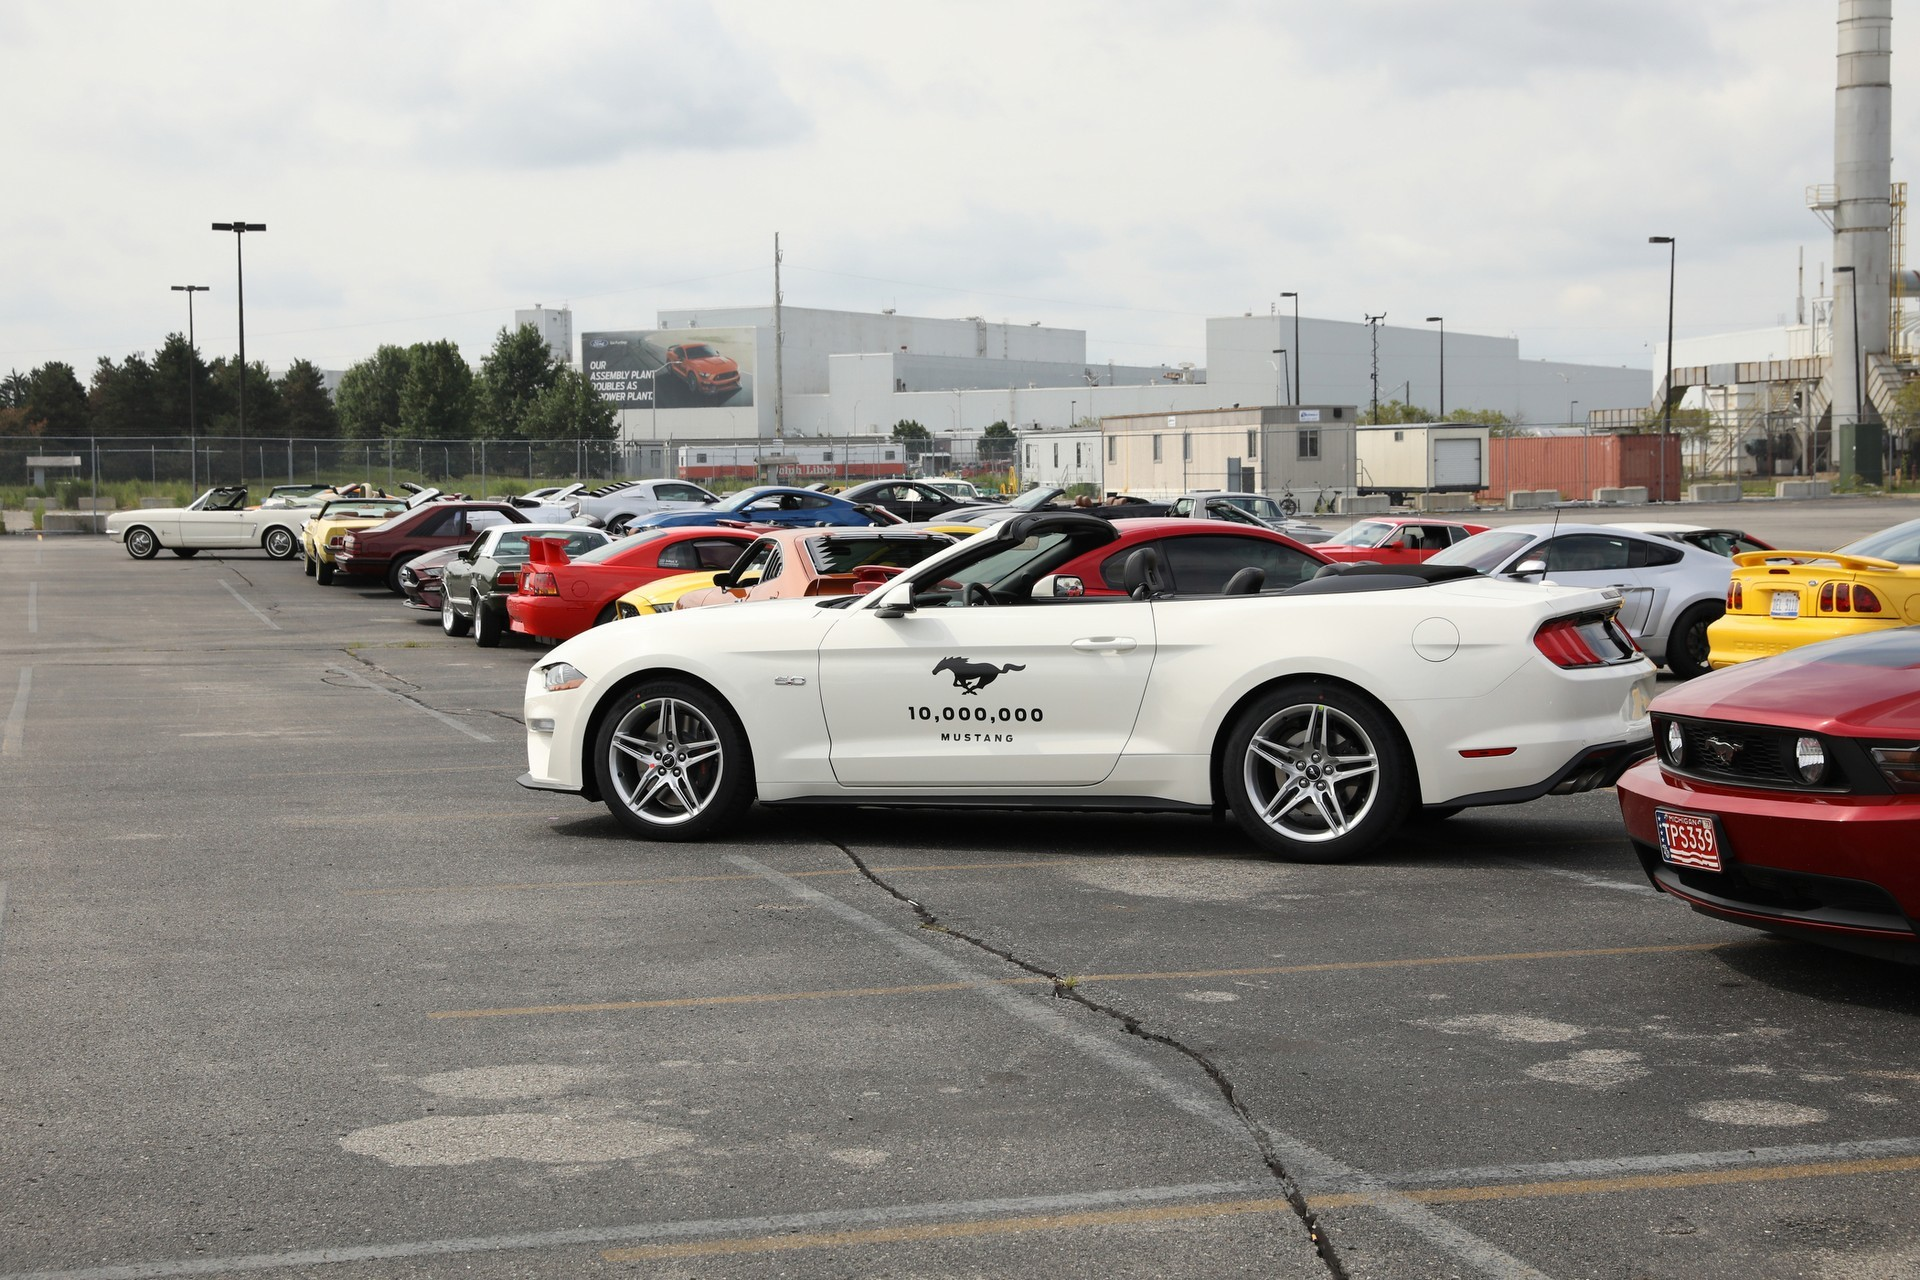 Ford Mustang 10 million (11)